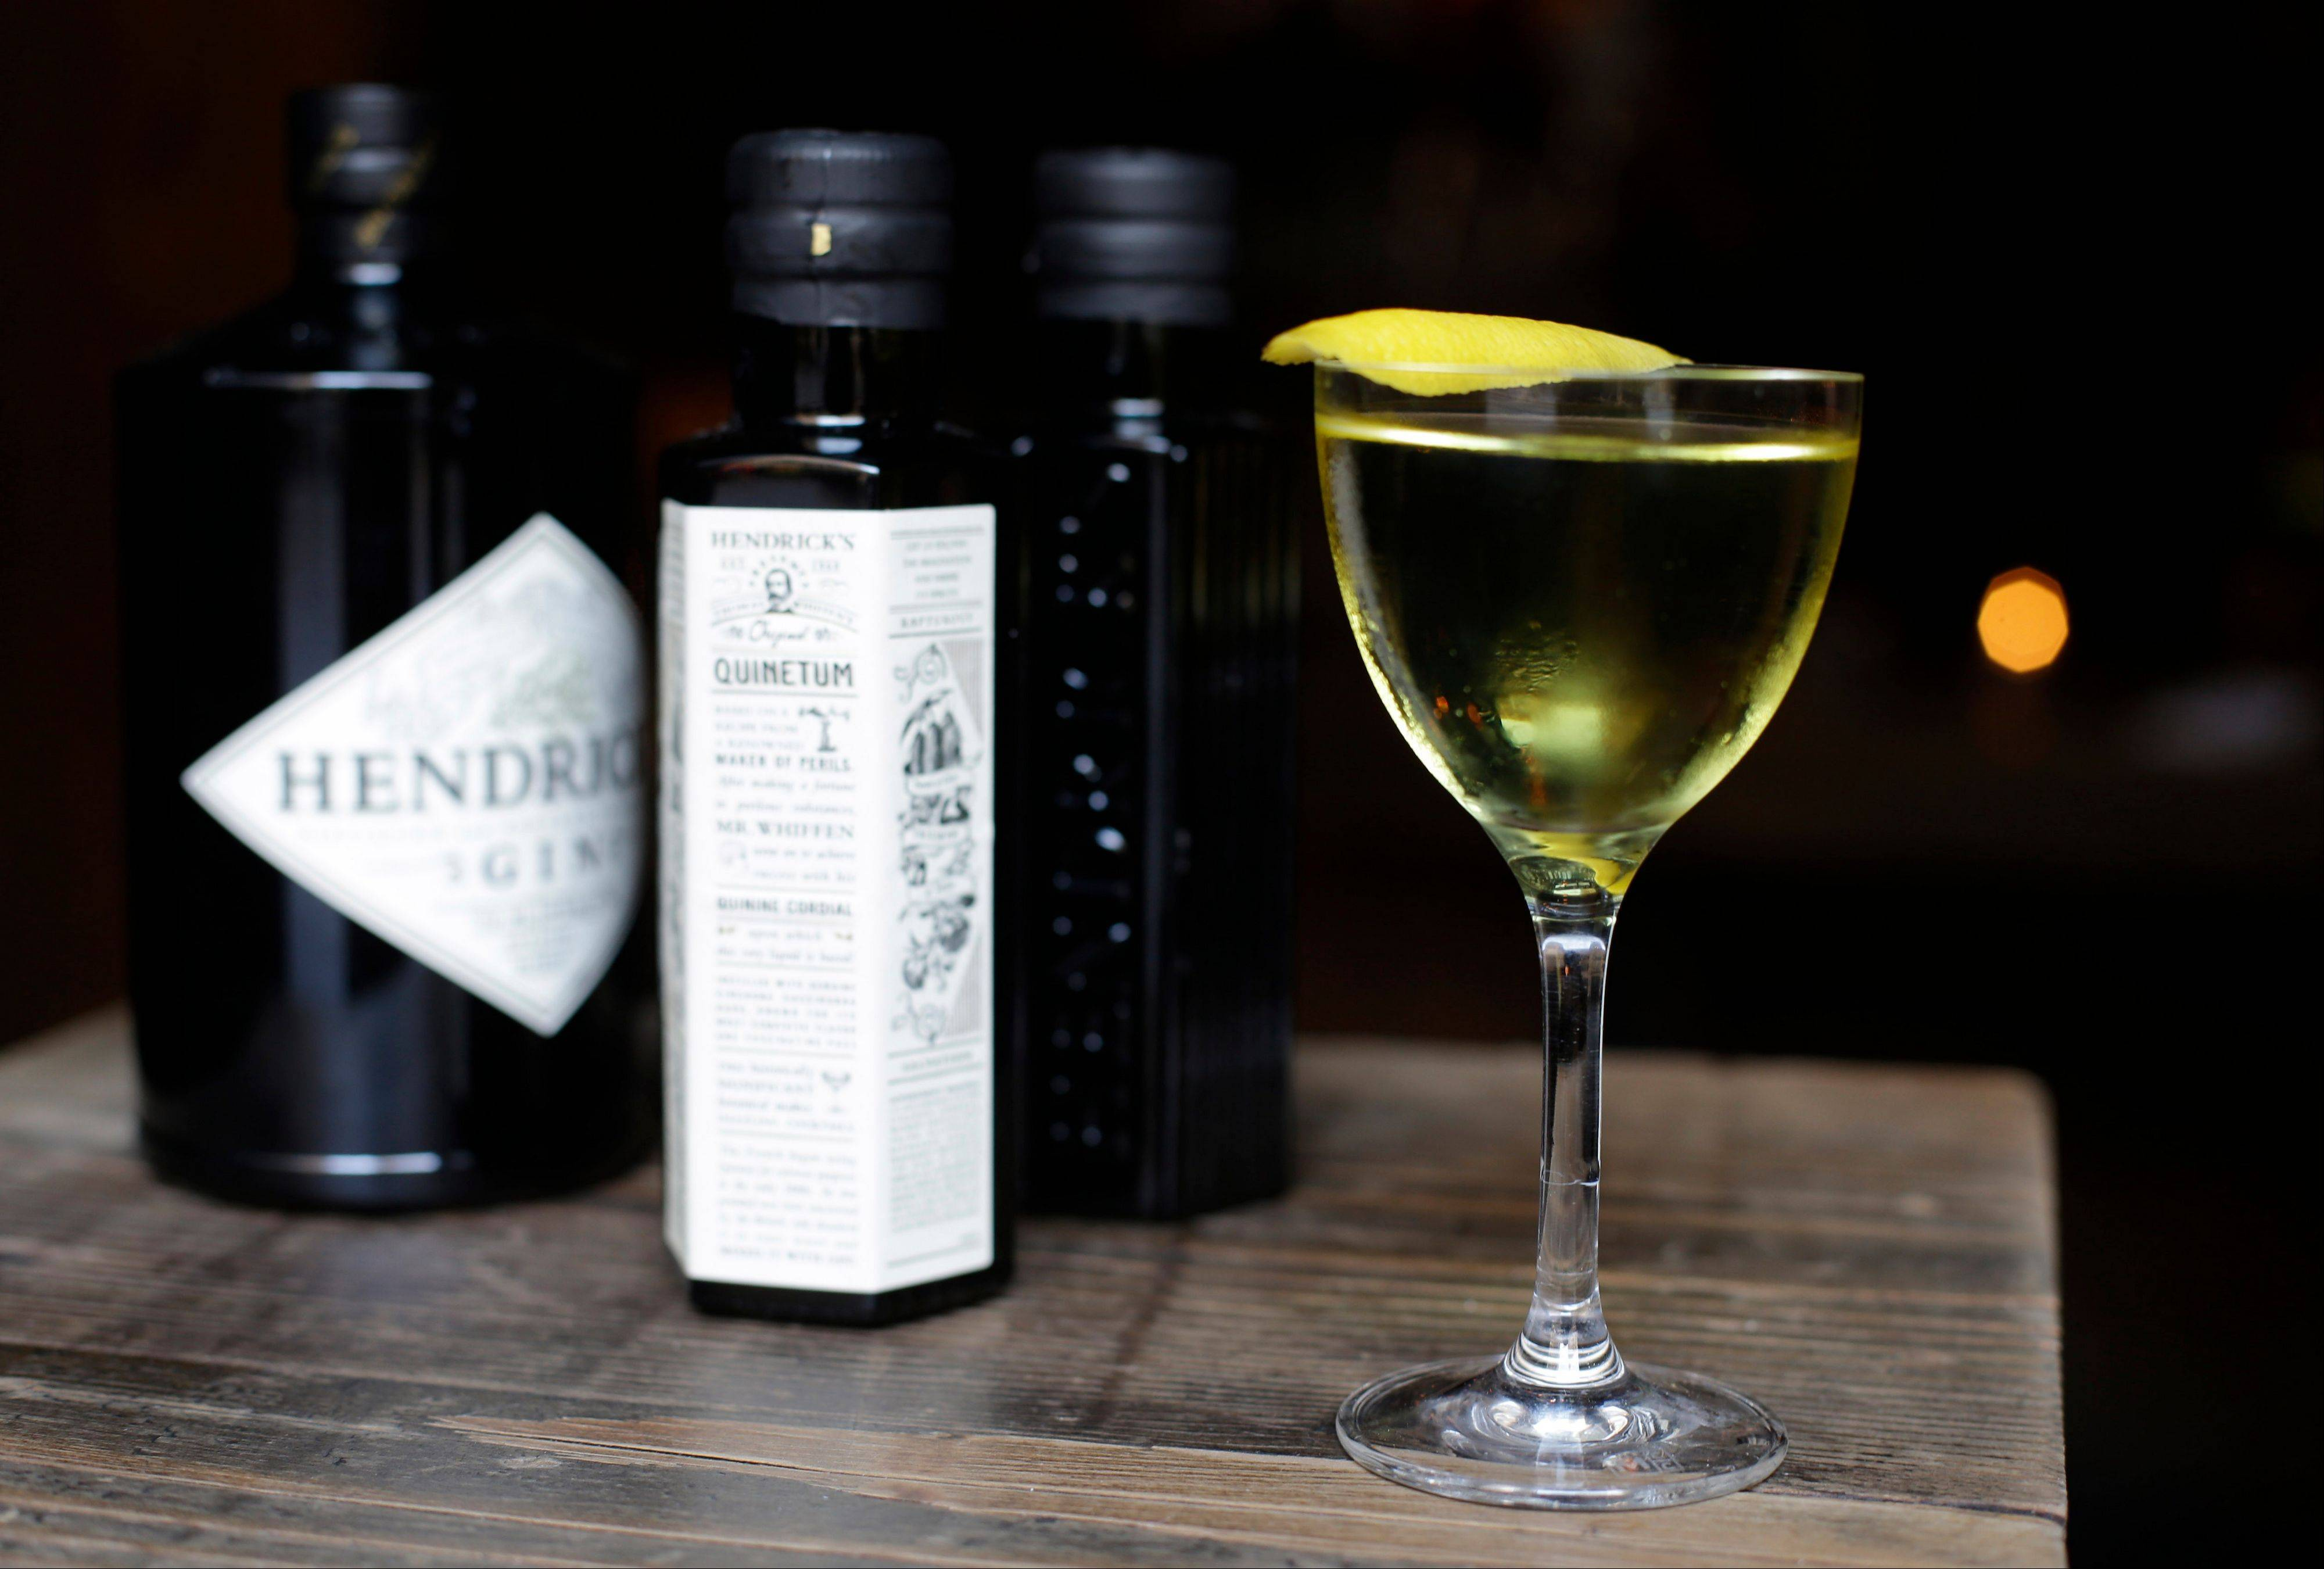 This photo taken Wednesday, Oct. 30, 2013 shows a drink called the Quinundrum, made with Quinetum, a new quinine cordial by Hendrick's Gin, at the Rickhouse bar in San Francisco. The drink also contains Lillet Blanc and Suze. Quinetum is sold exclusively to a few bars around the country.